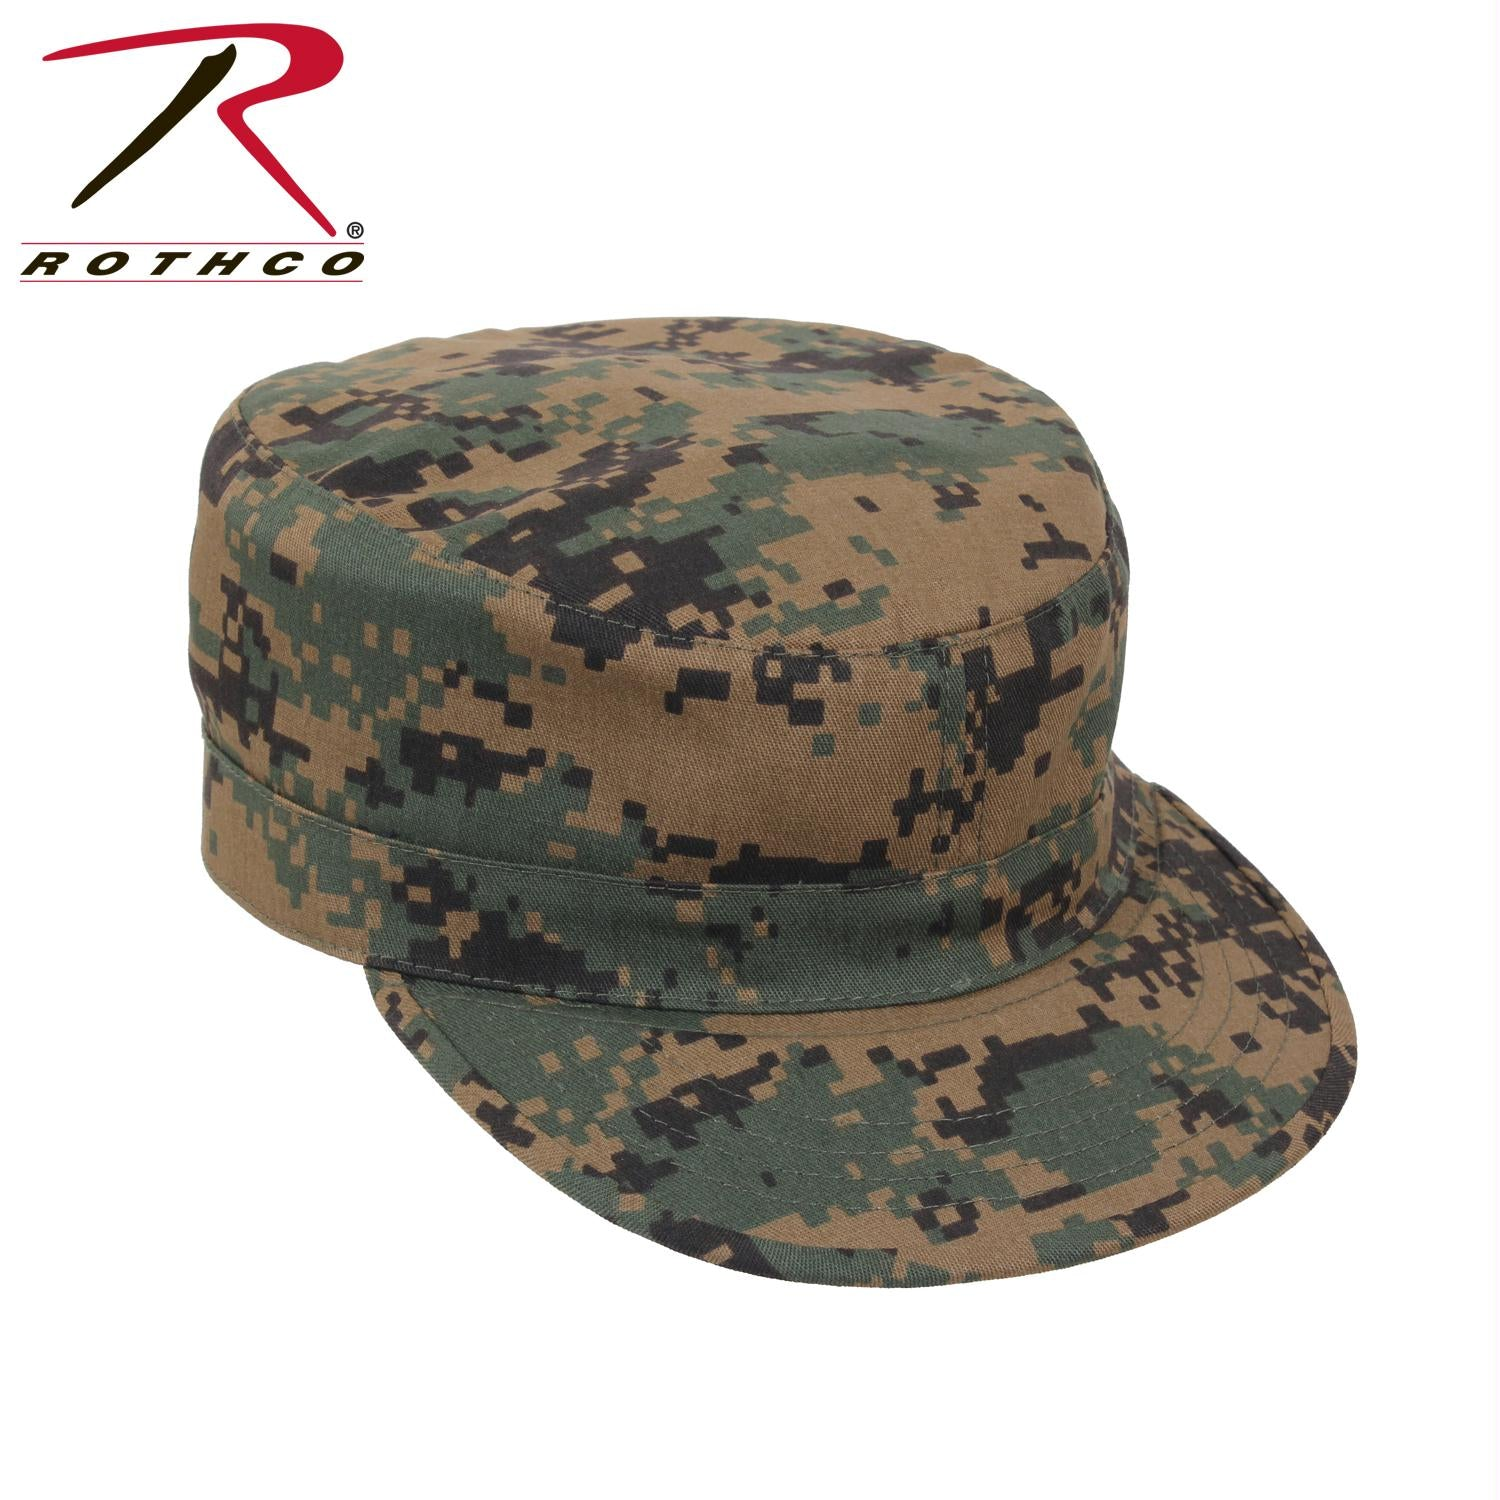 Rothco Adjustable Camo Fatigue Cap